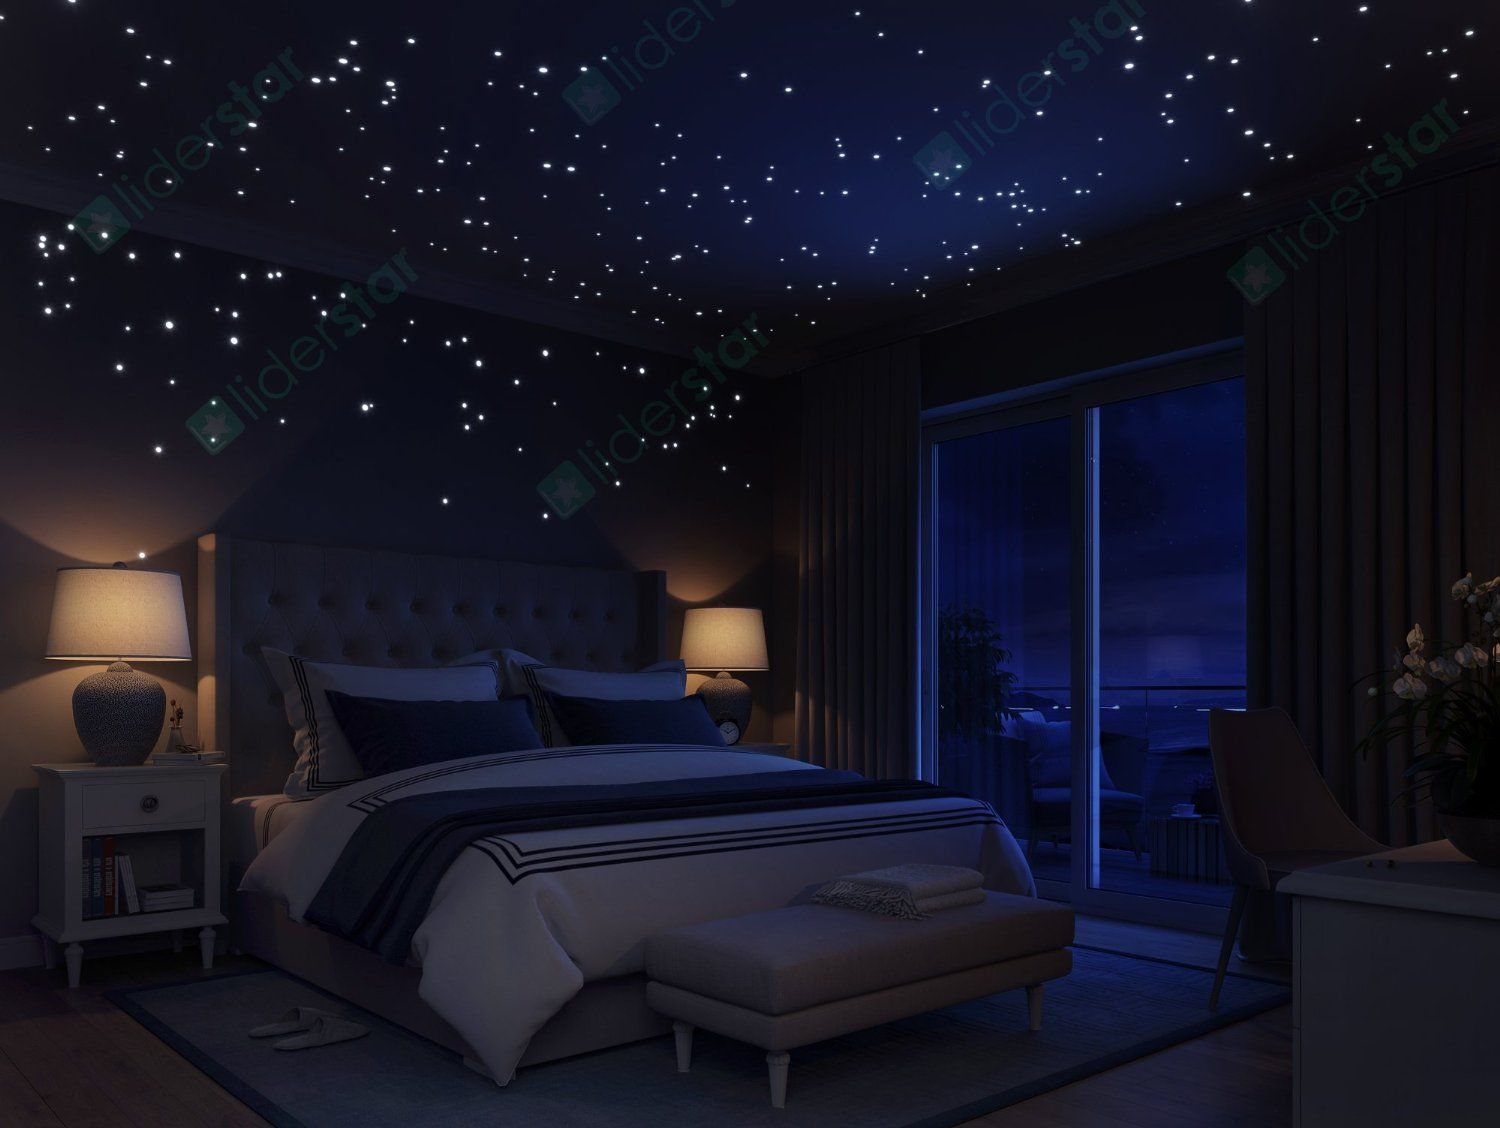 Bedroom ceiling lights stars - Find This Pin And More On Boys Bedroom Ceiling Constellation